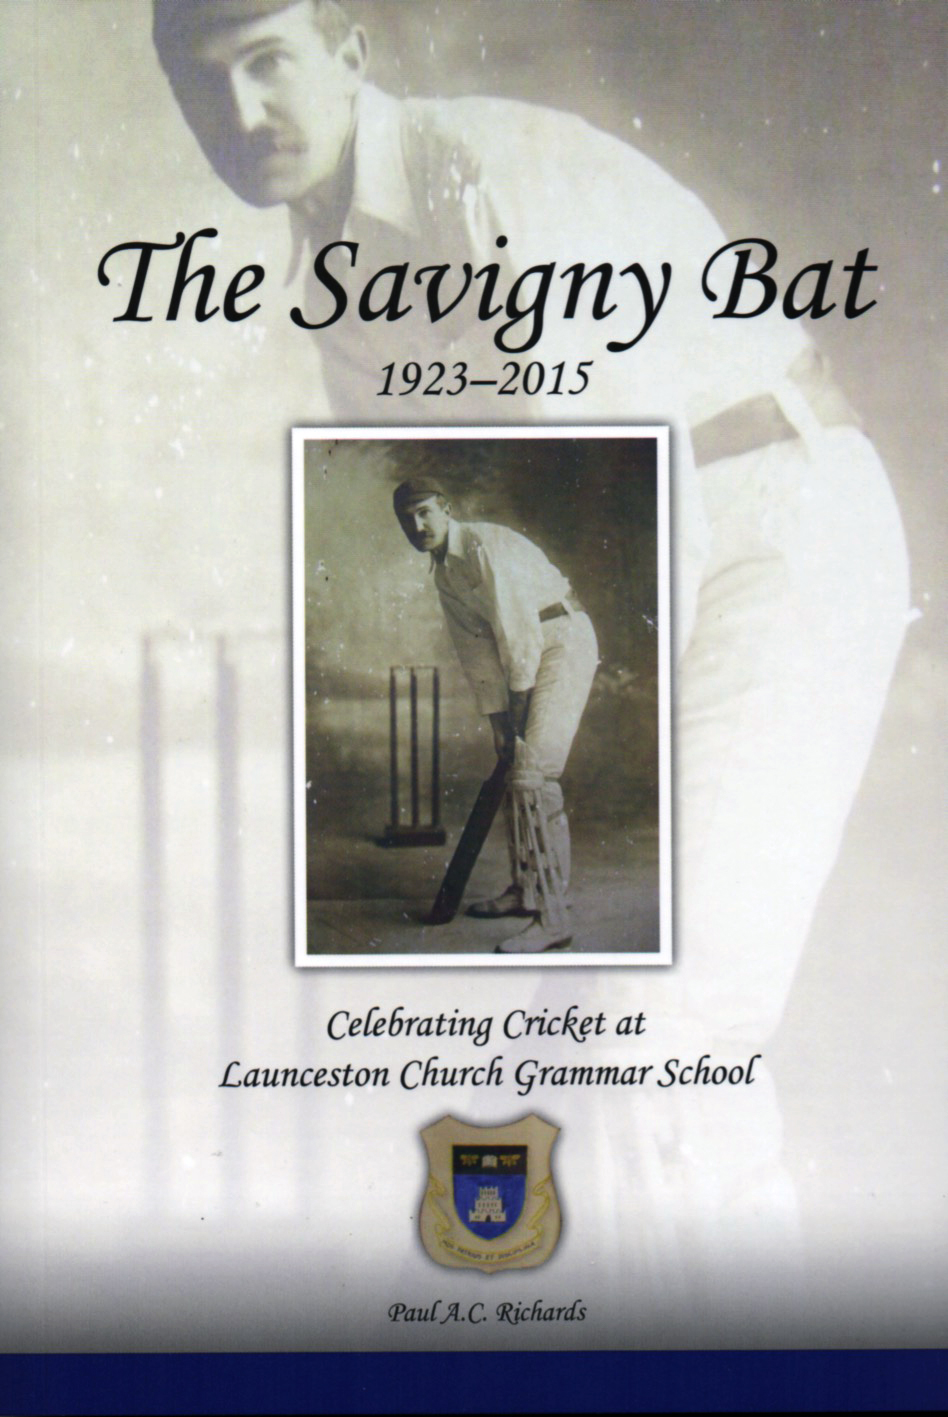 The Savigny Bat 1923 - 2015